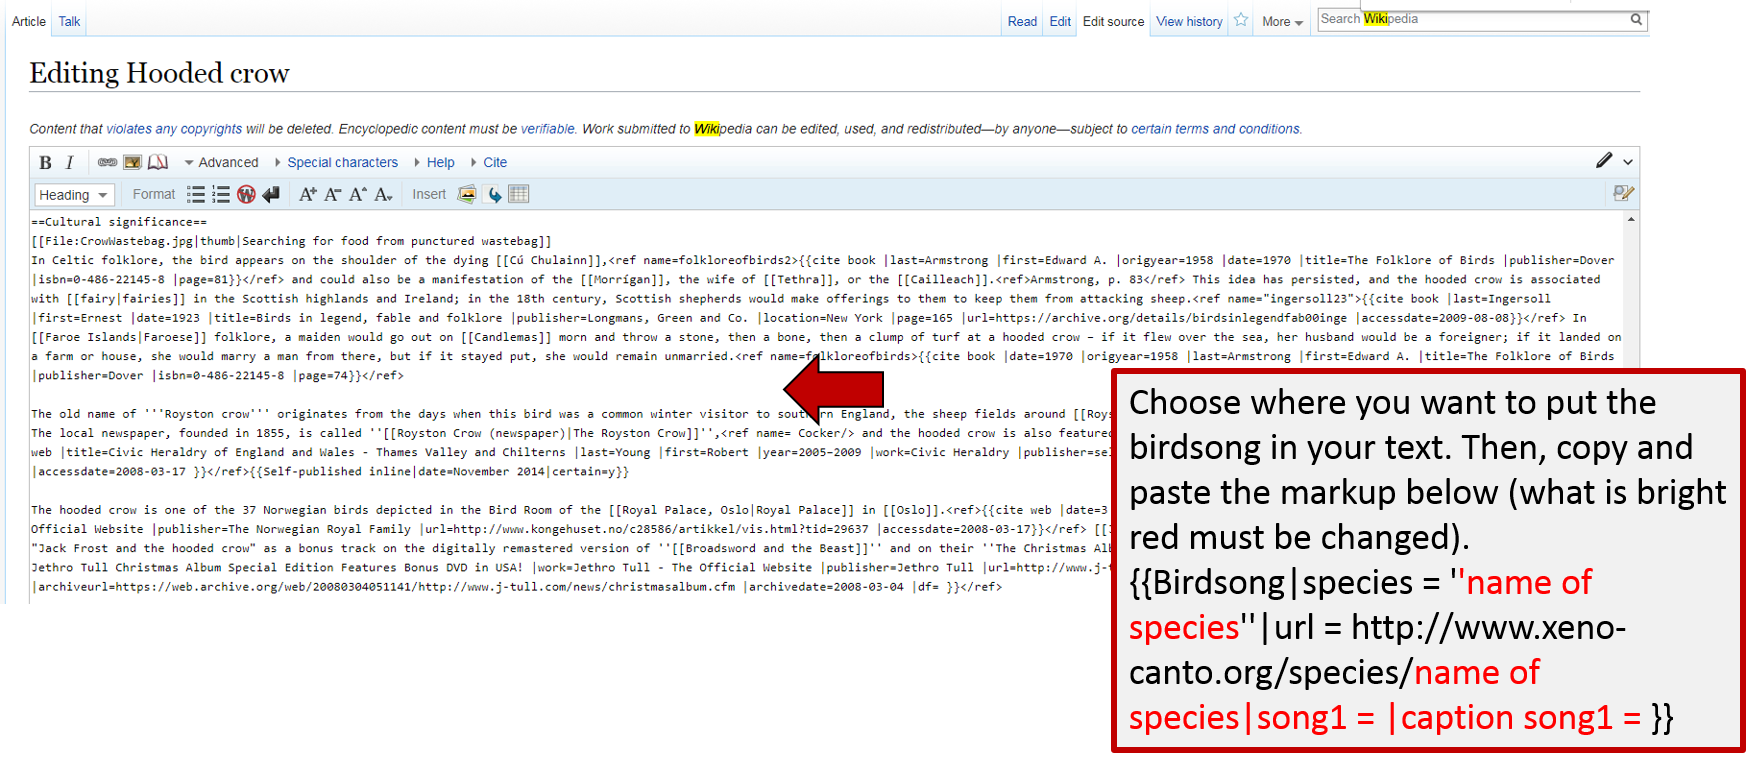 Screenshot of how to add the wiki markup to add a birdsong box to an article